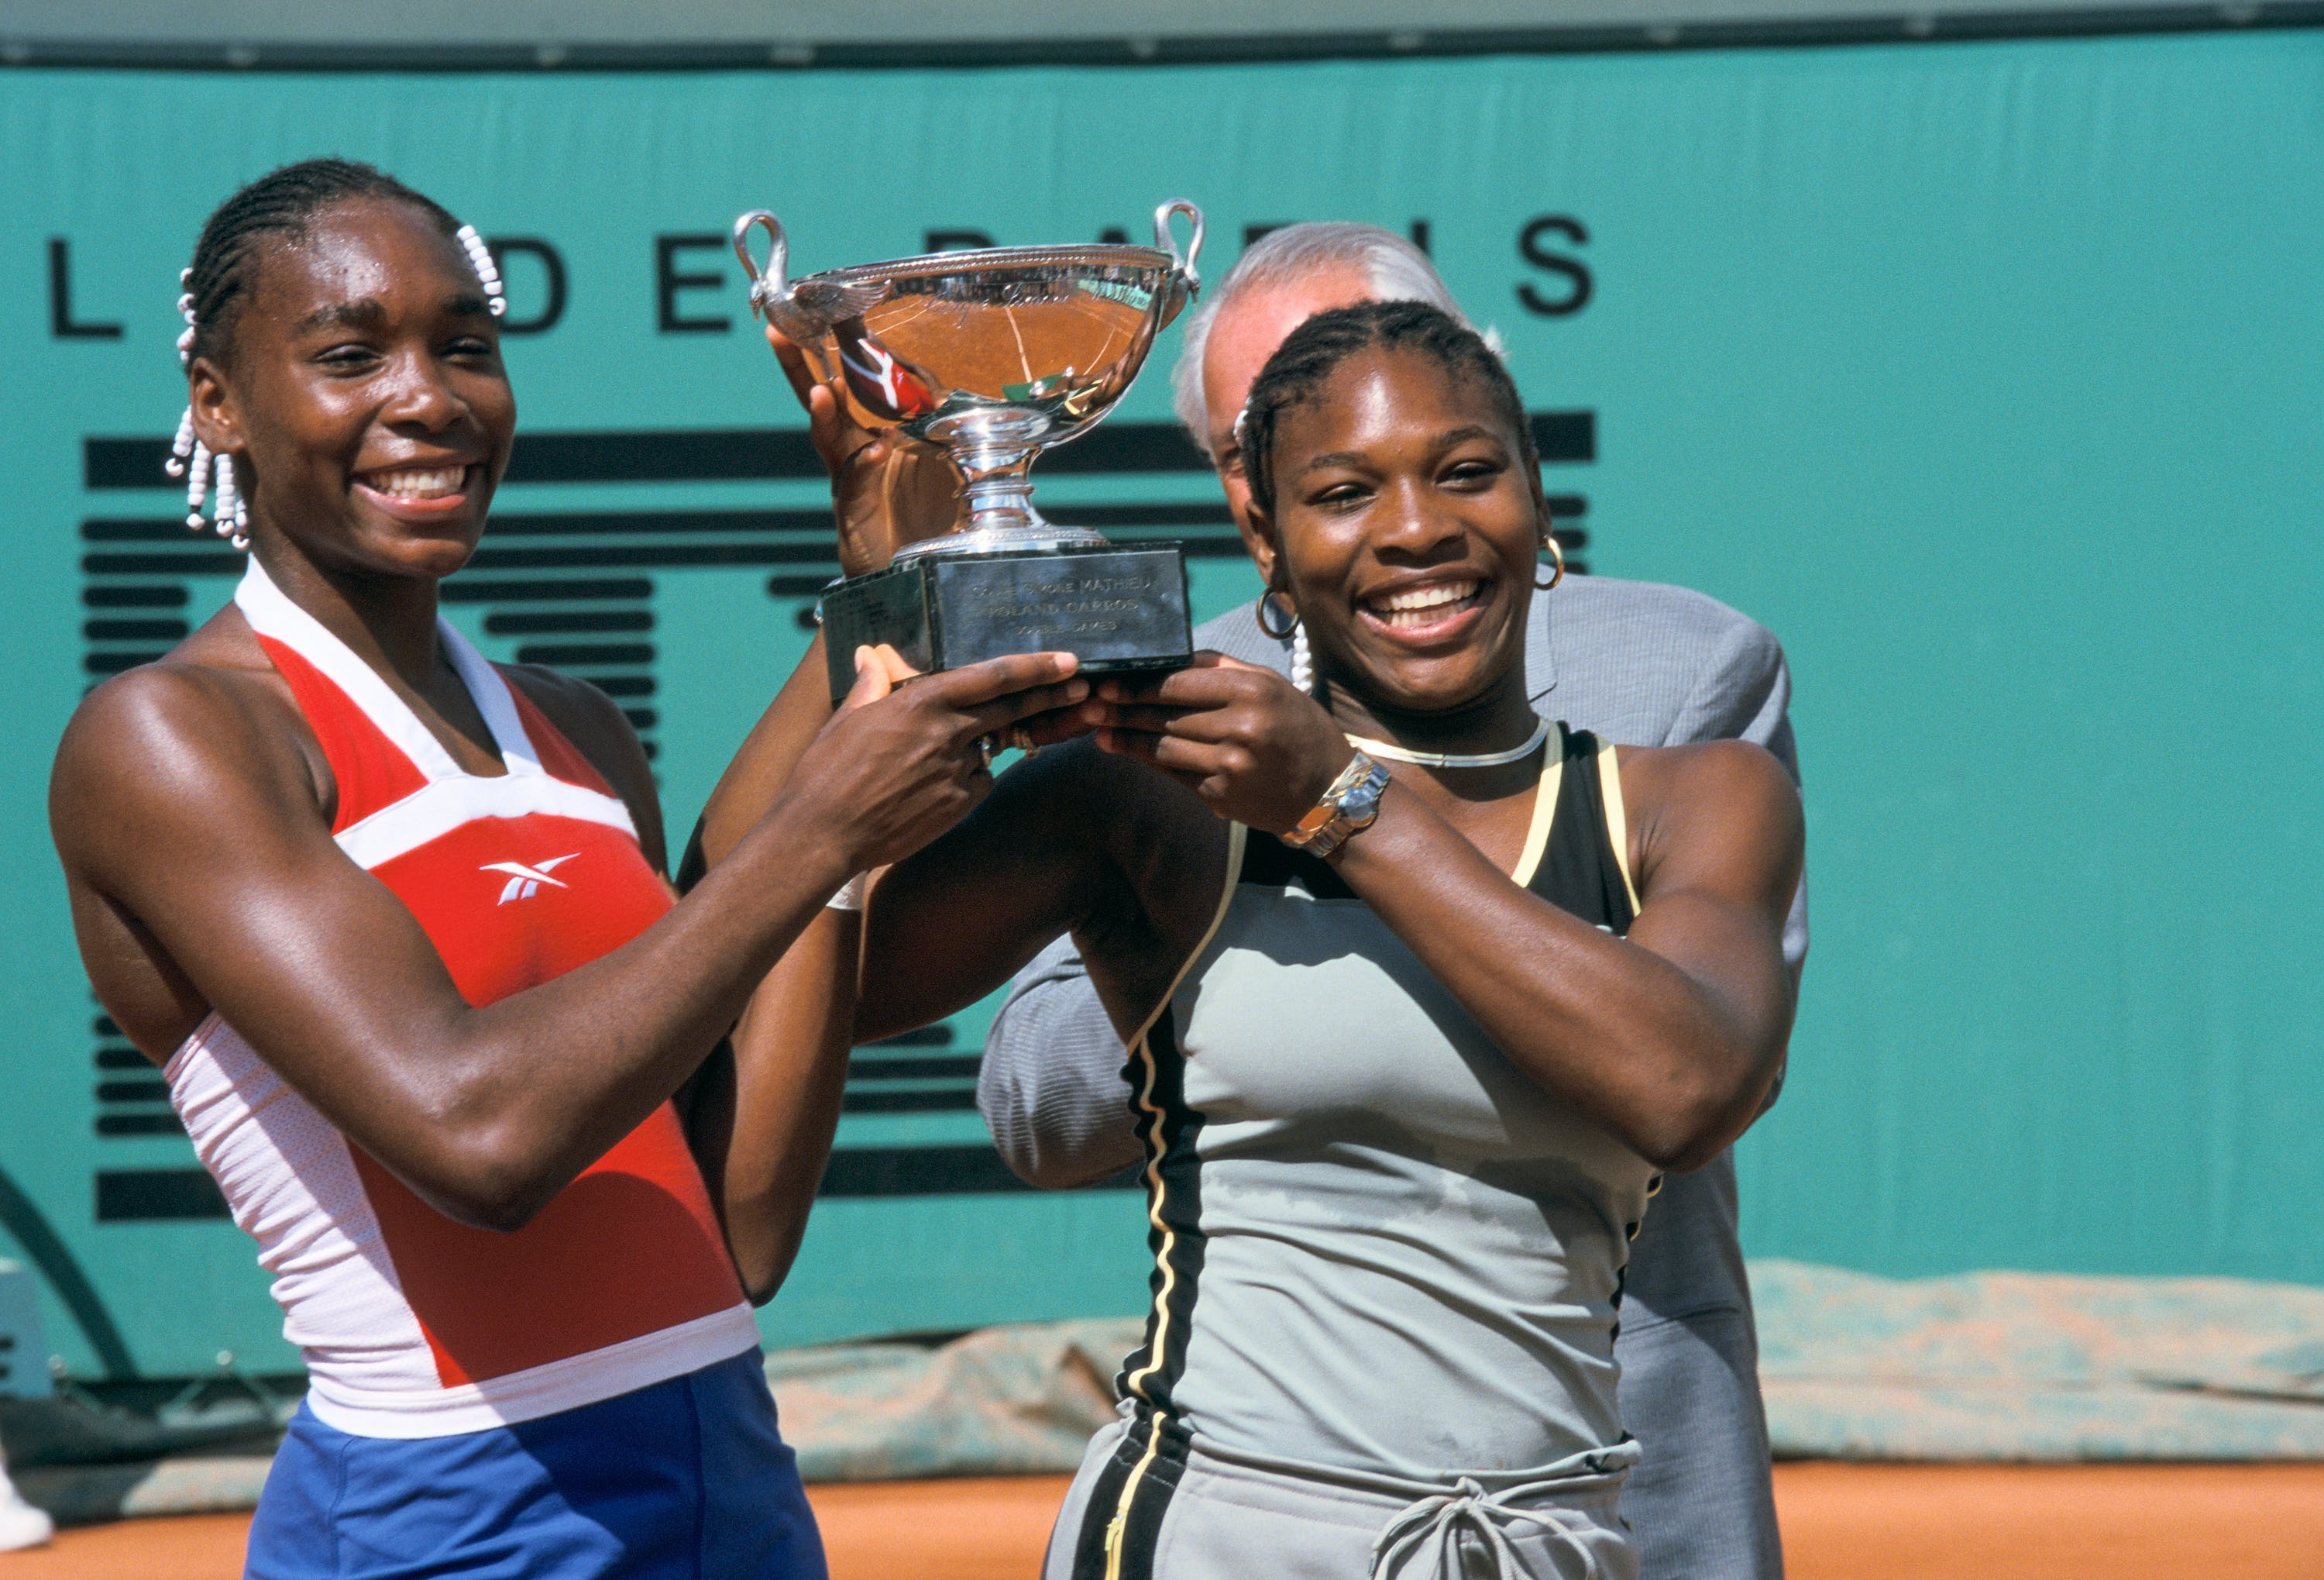 Venus & Serena Williams with the double trophy at Roland-Garros 1999